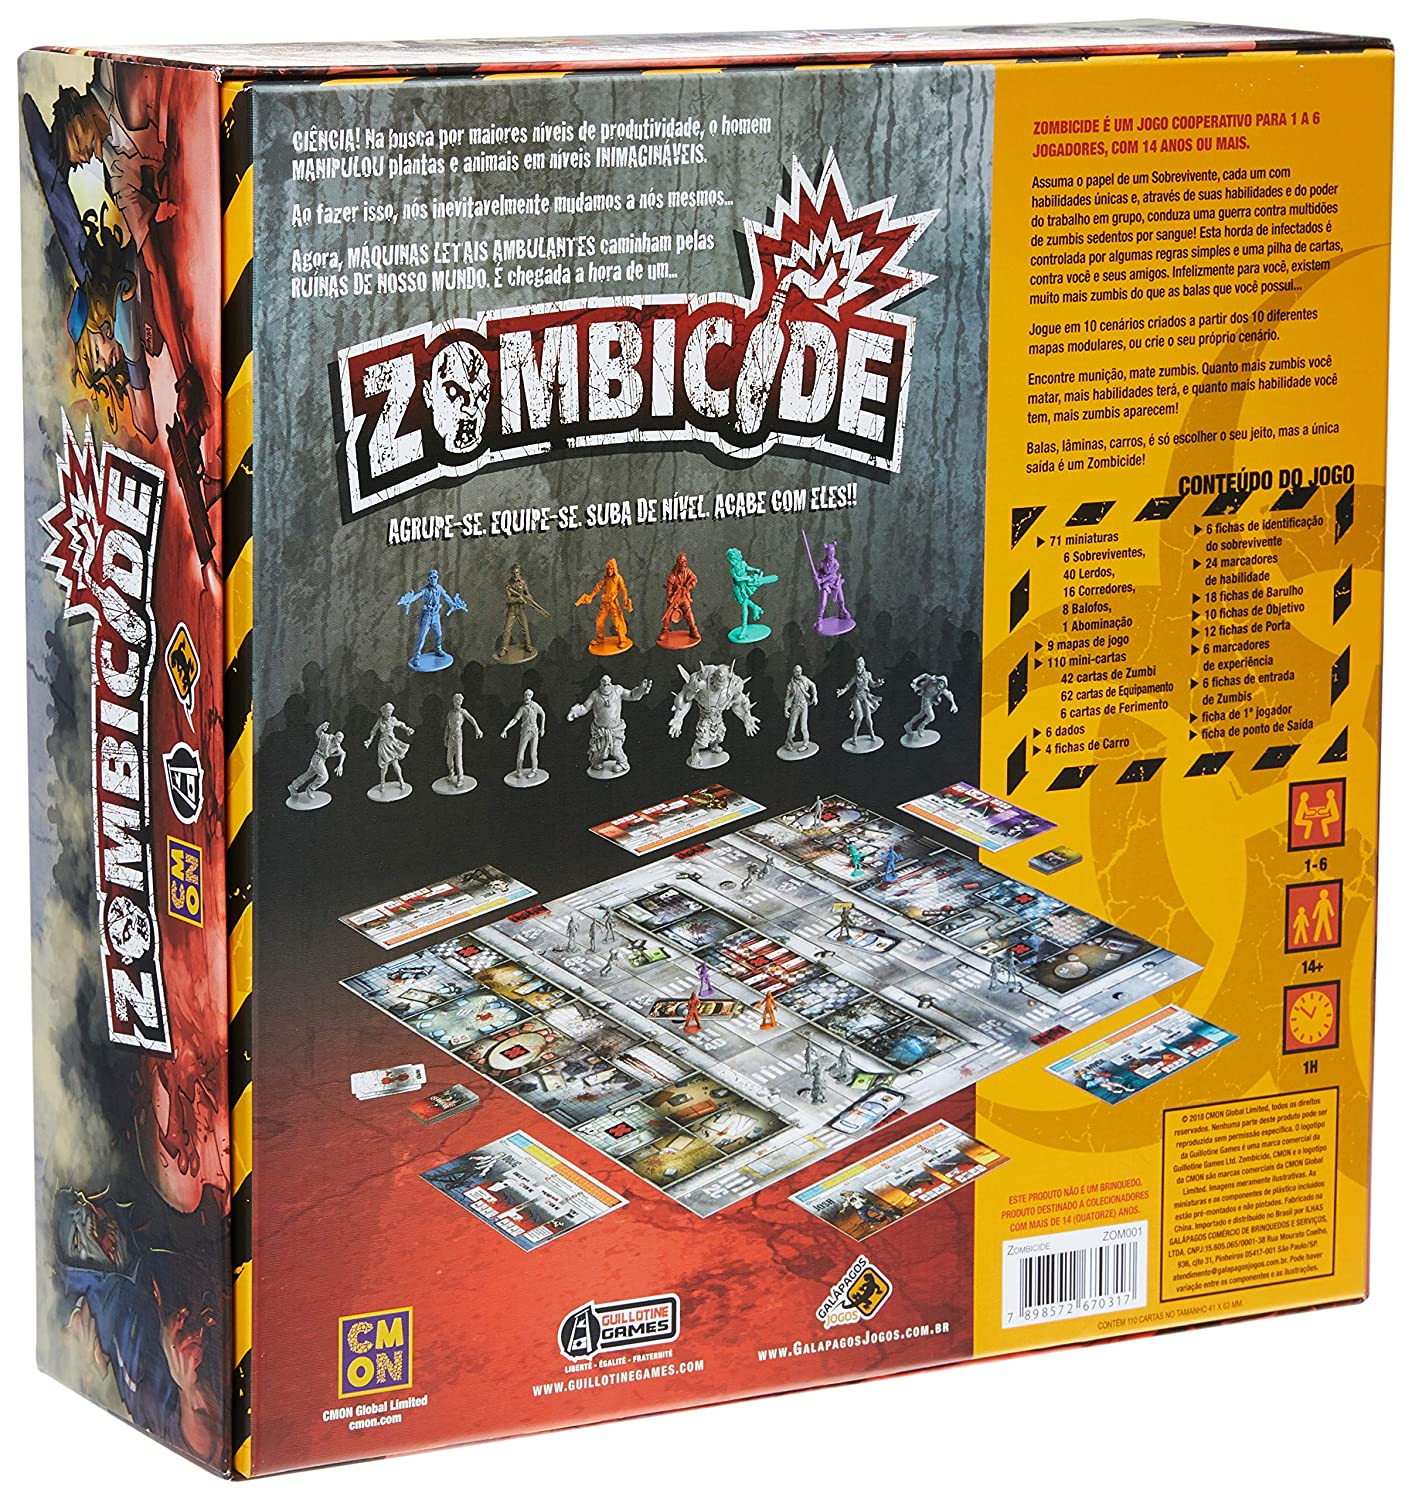 Amazon.com: ZOMBICIDE: Toys & Games